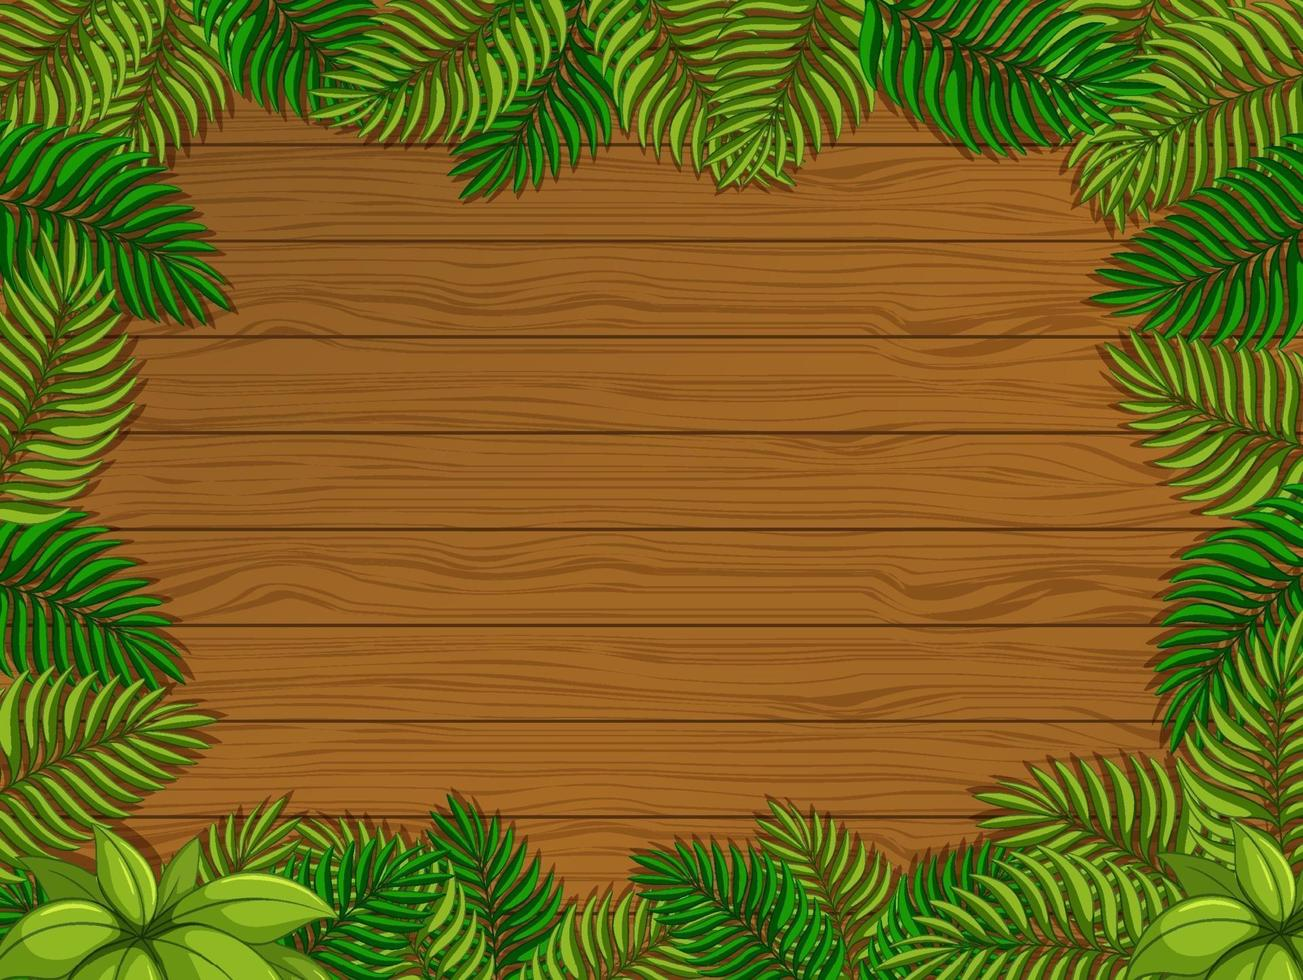 Empty wooden background with tropical leaves elements vector